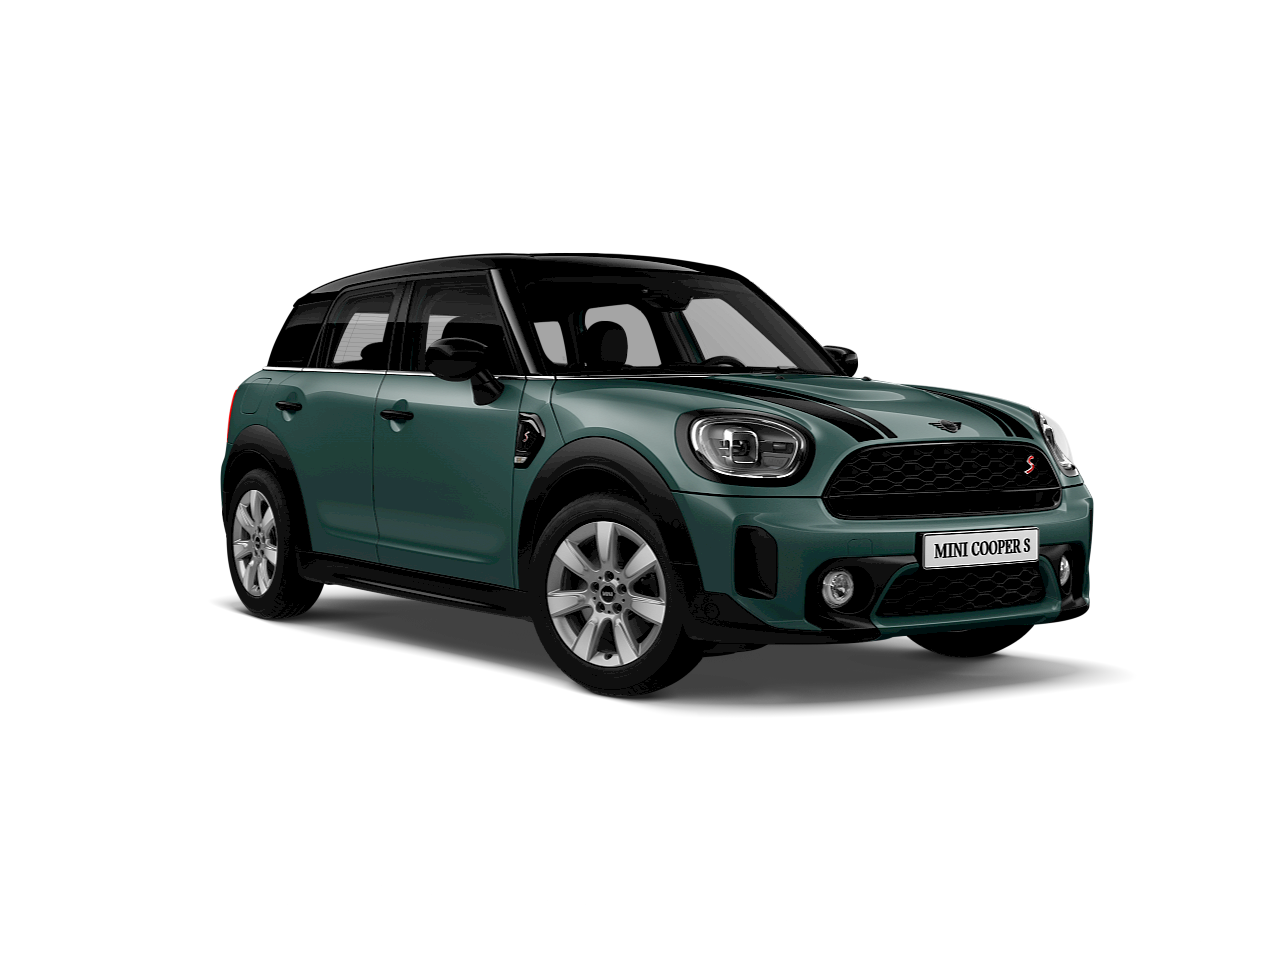 MINI Cooper S Countryman –blue – front and side view